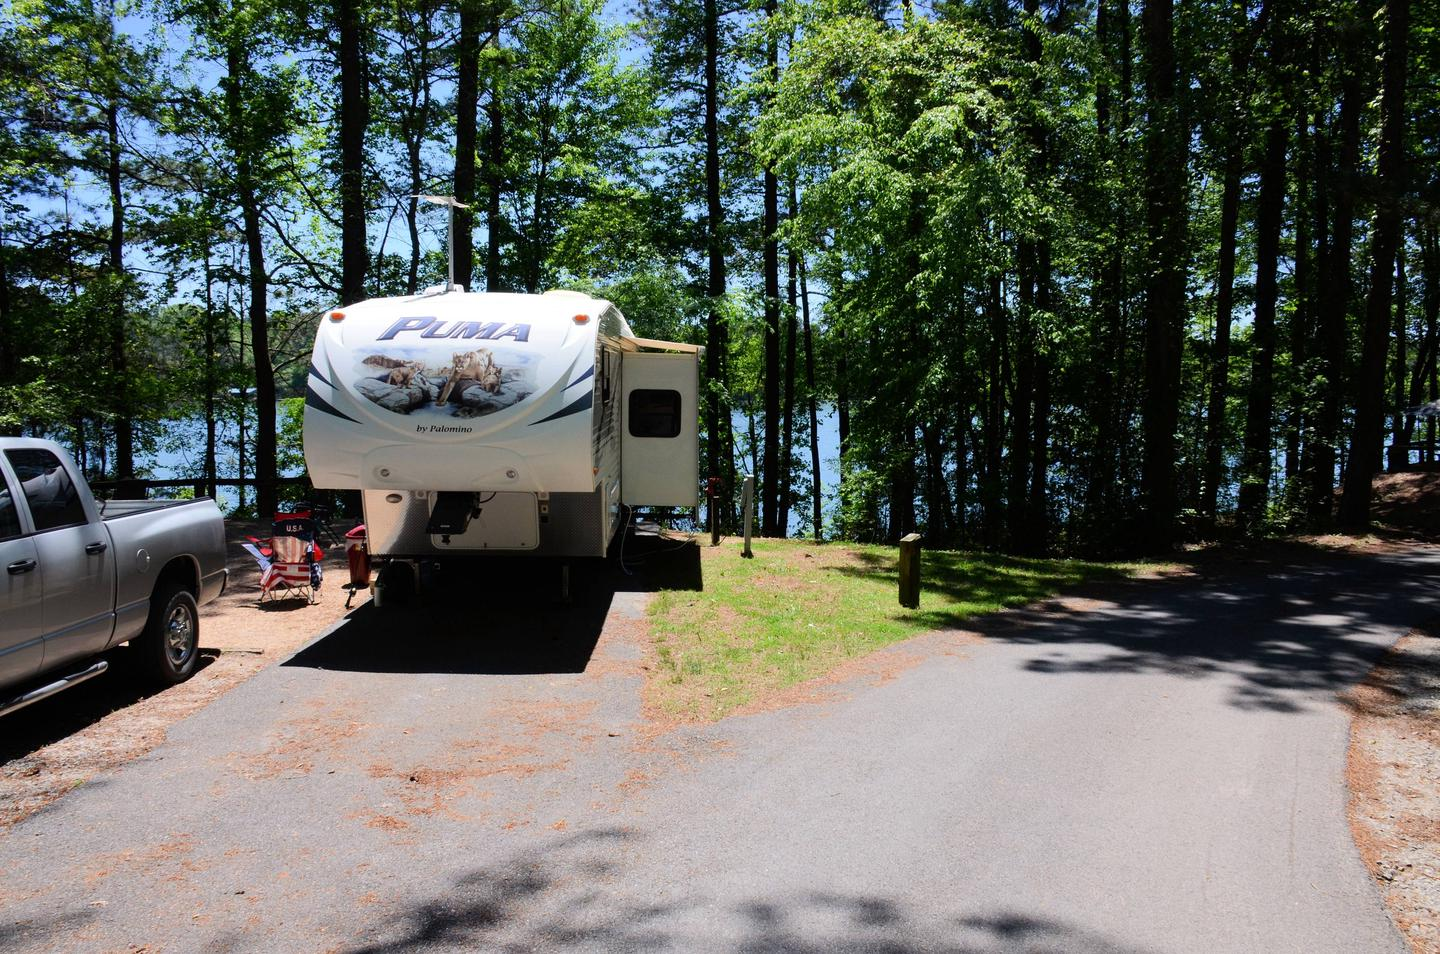 Driveway entrance angle/slope, utilities-side clearance.McKinney Campground, campsite 131.